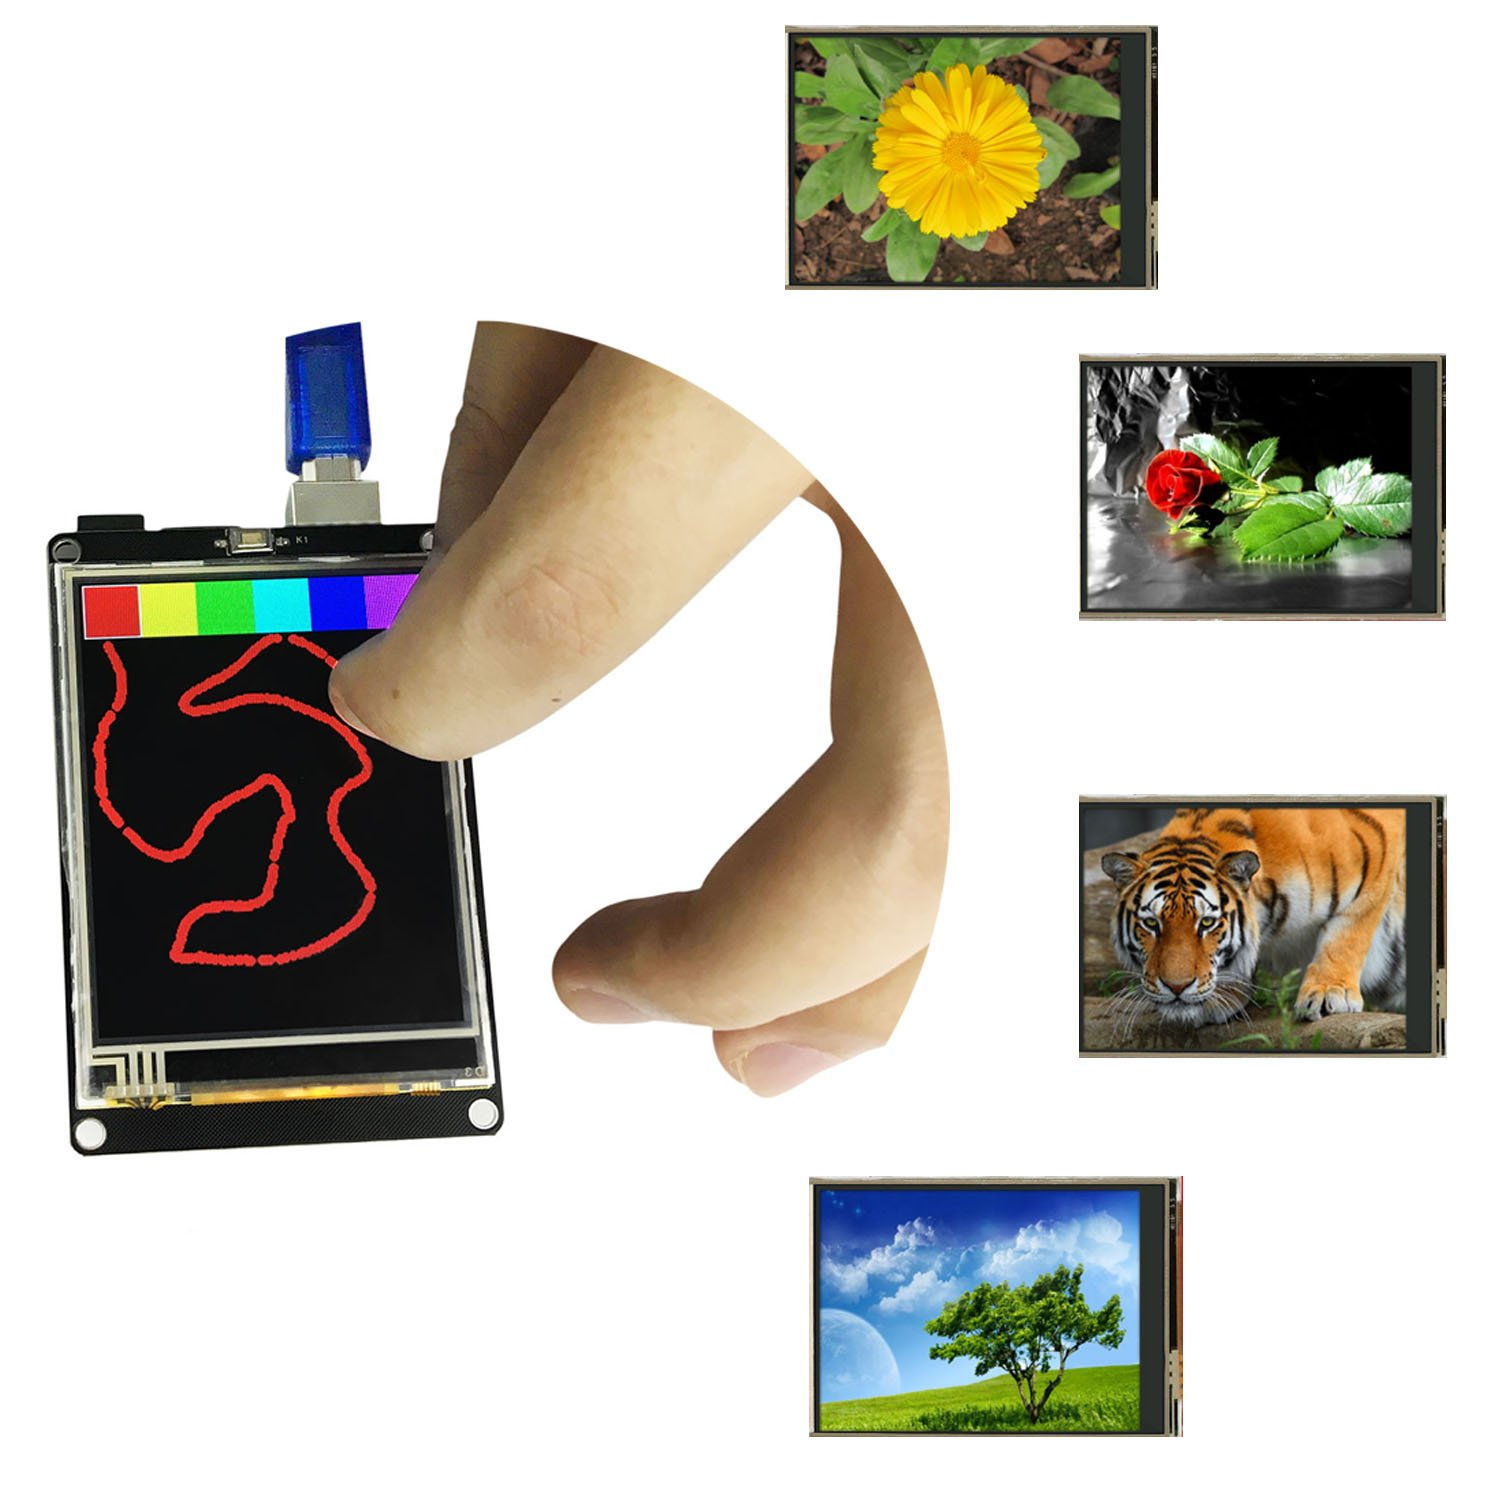 KEYESTUDIO 2.8 inch TFT LCD Display Shield Touch Panel ILI9325 for Arduino UNO R3